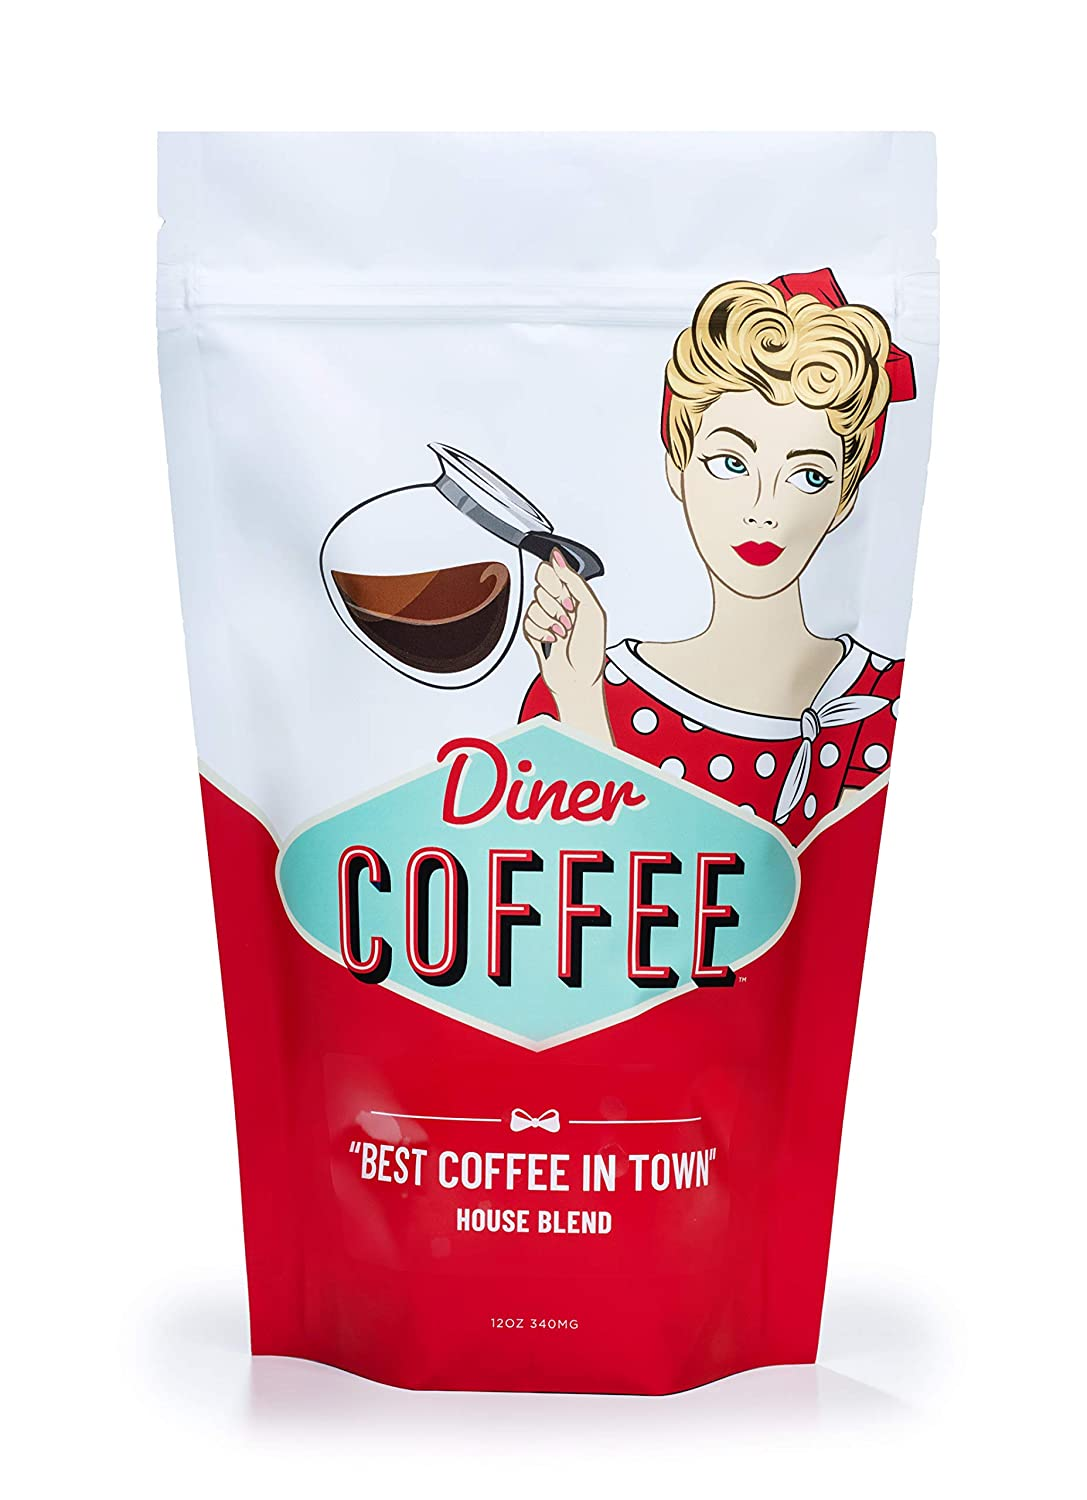 Diner Coffee-Roasted House Blend Fresh from the Roaster - Classic Old-Fashioned Flavor, Extra Smooth Brewed Taste, and Full-Body Aroma - Daily Brew Essential Pack (Medium Roast, 12 Ounce Whole Bean)